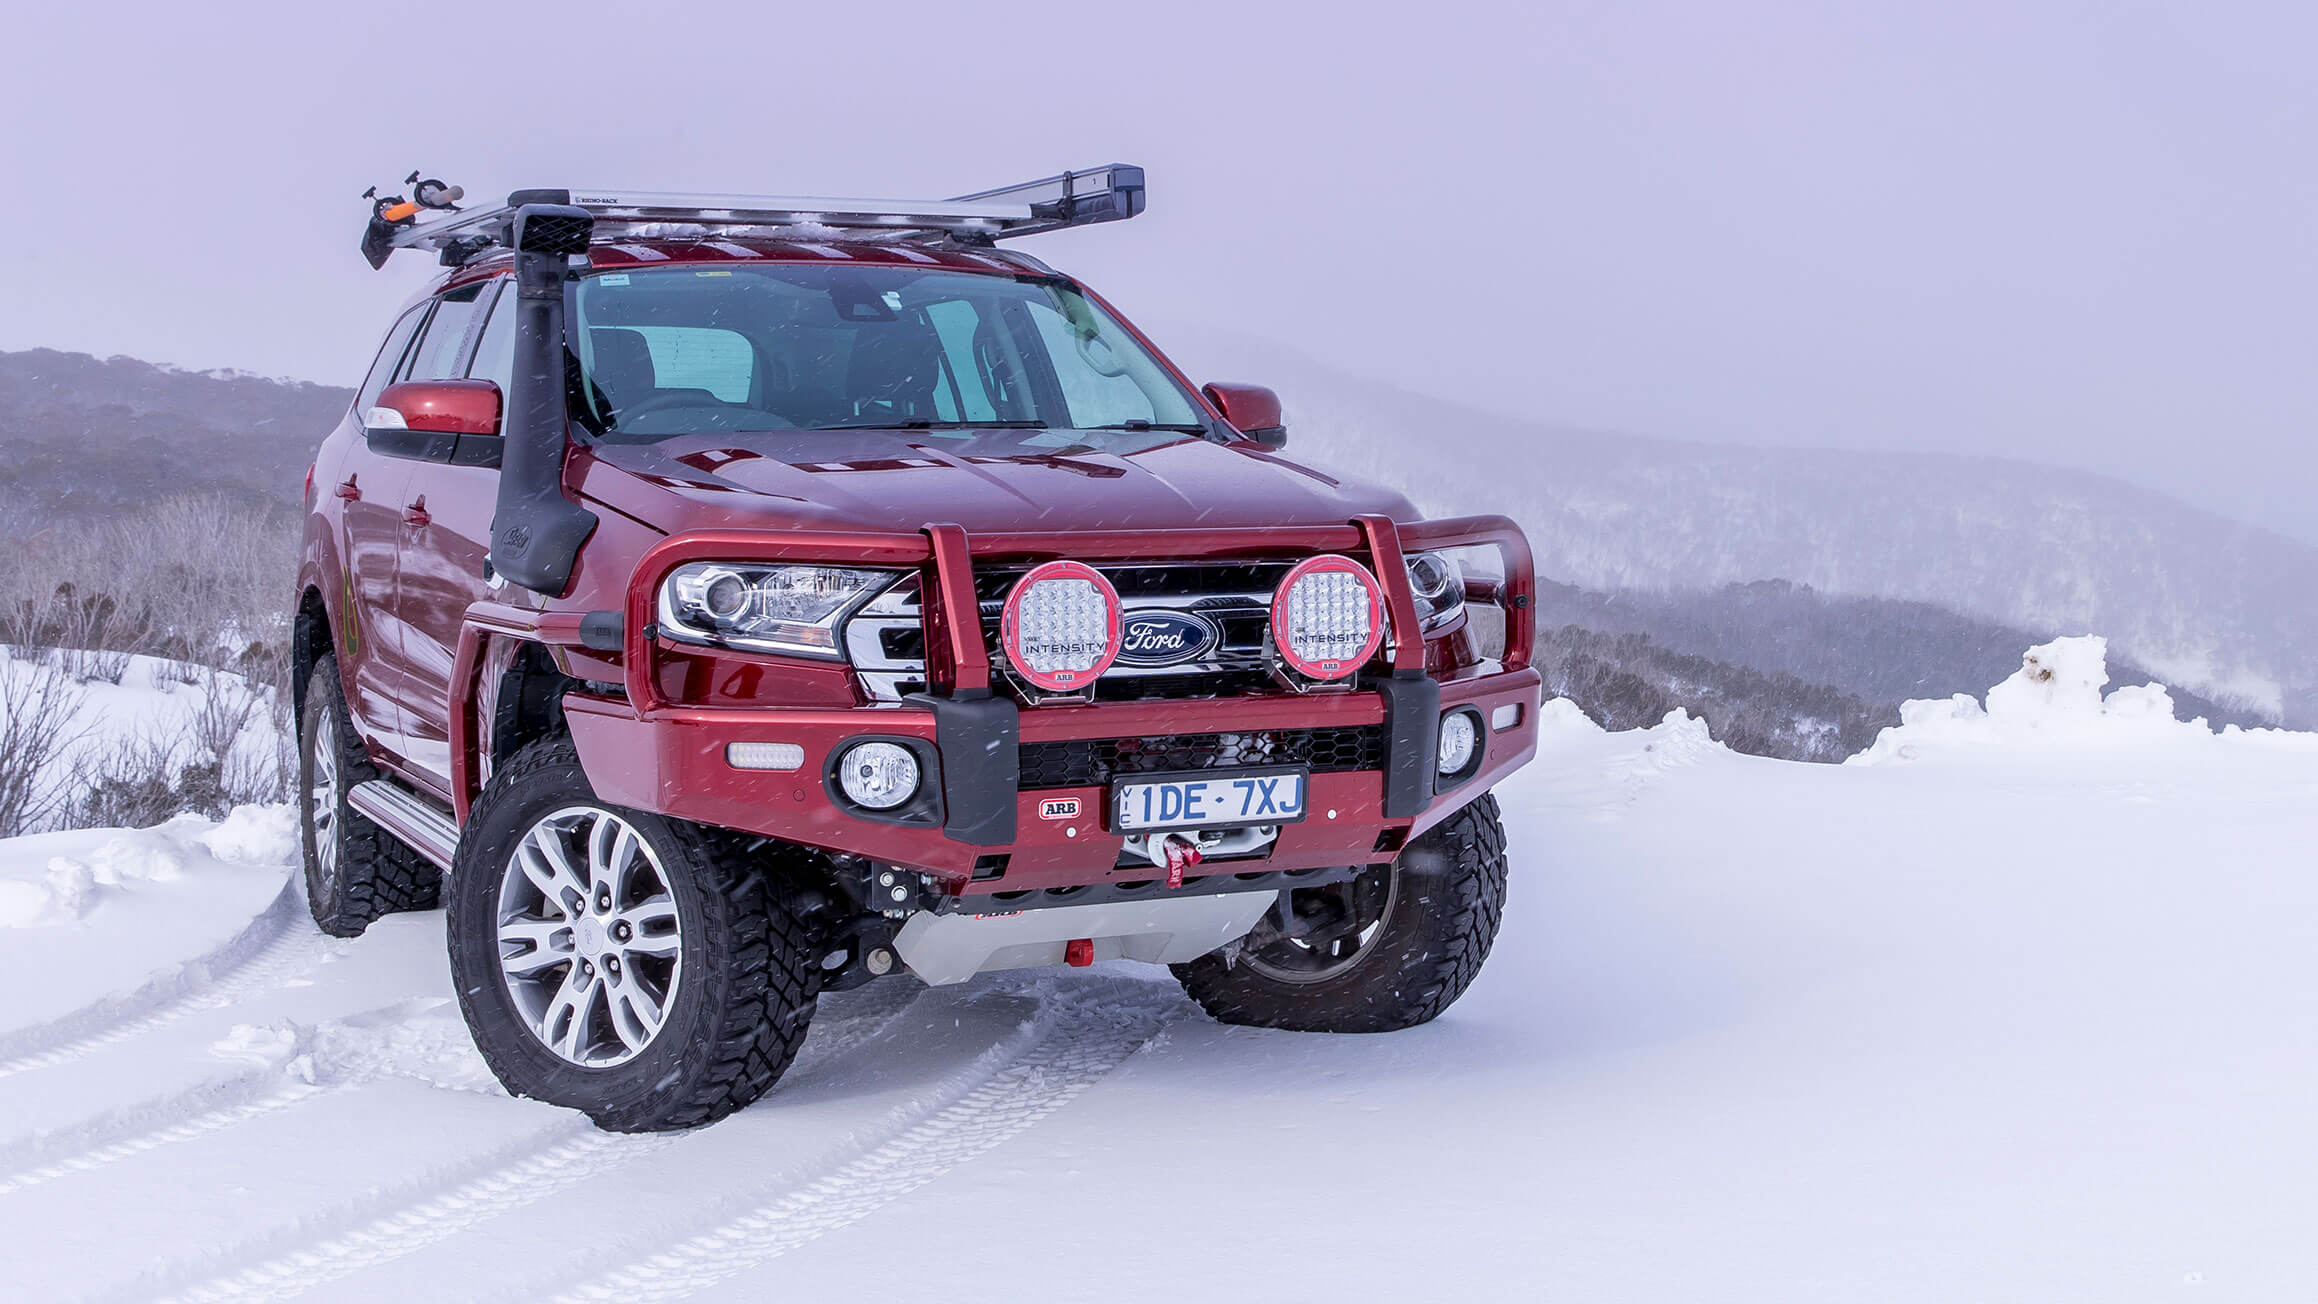 ARB 4×4 Accessories | Bull Bars & Protection Equipment - ARB